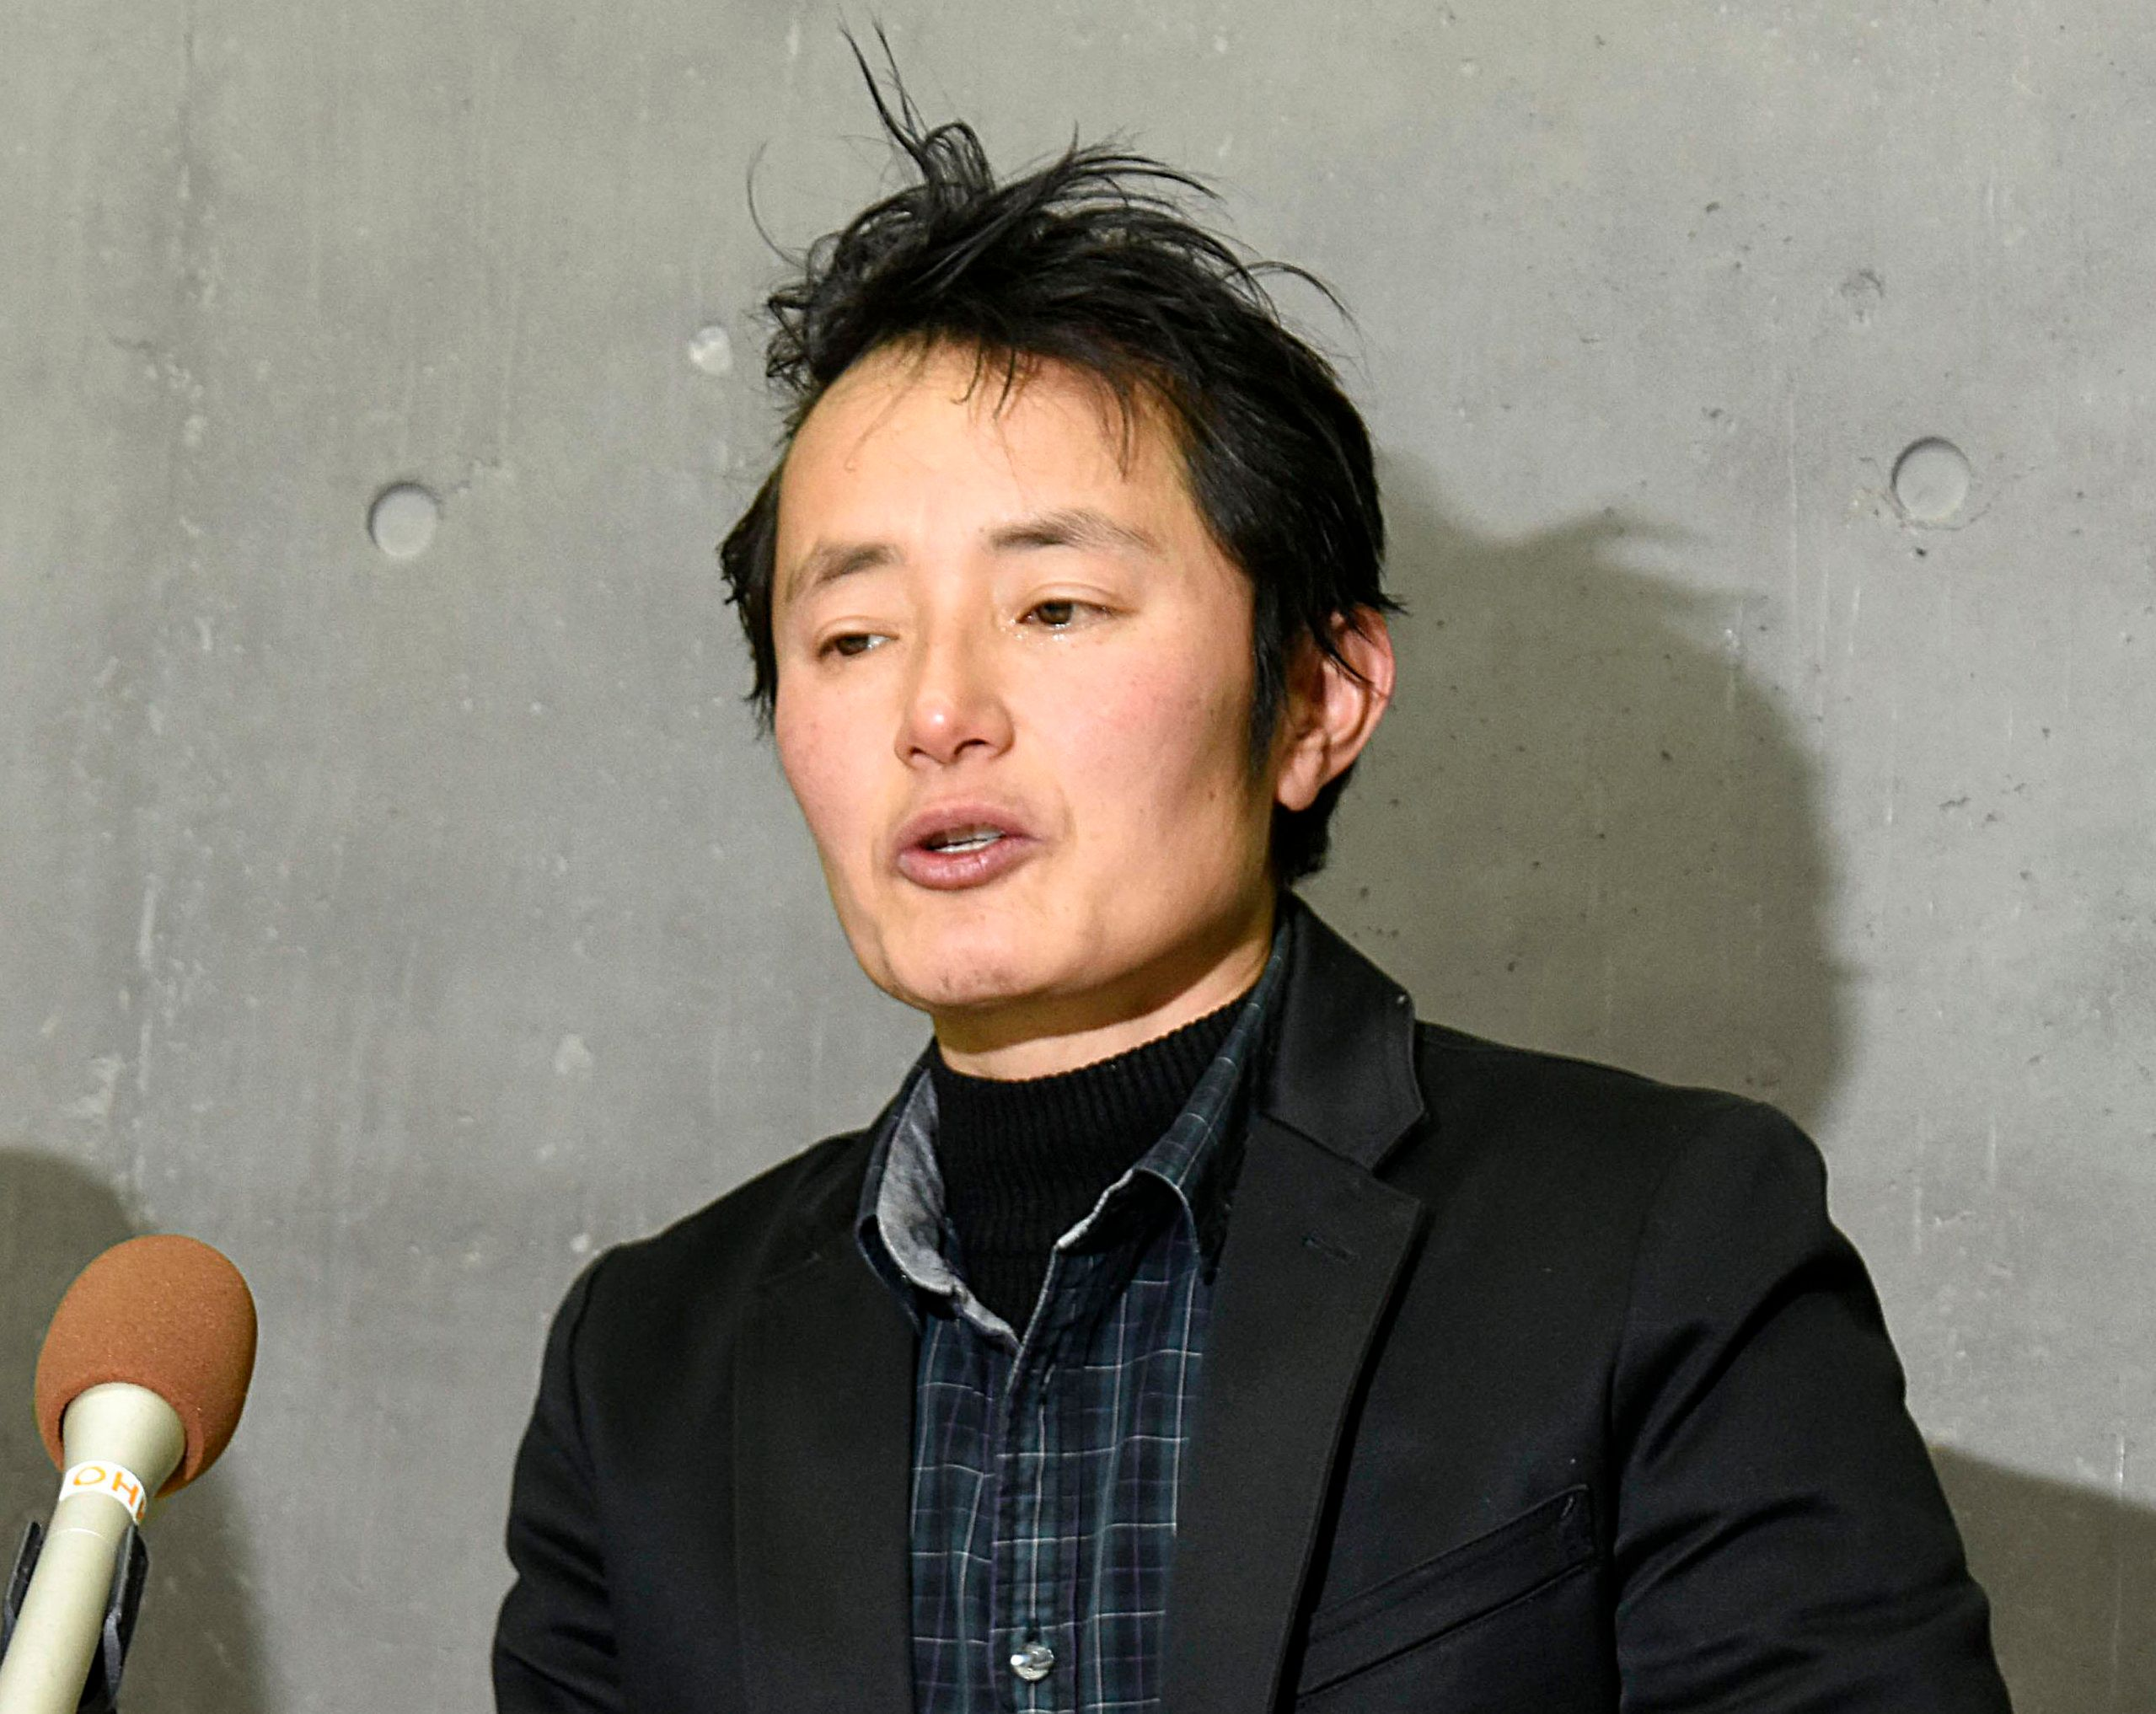 In this Thursday, Jan. 24, 2019, photo, Takakito Usui, a transgender man, cries while speaking during a press conference after Japan's Supreme Court handed down in Okayama, western Japan. Japan's top court has upheld a law requiring sterilization for transgender people to get their gender changed on official documents but acknowledged the law is increasingly becoming out of step with the international standard. (Kyodo News via AP)